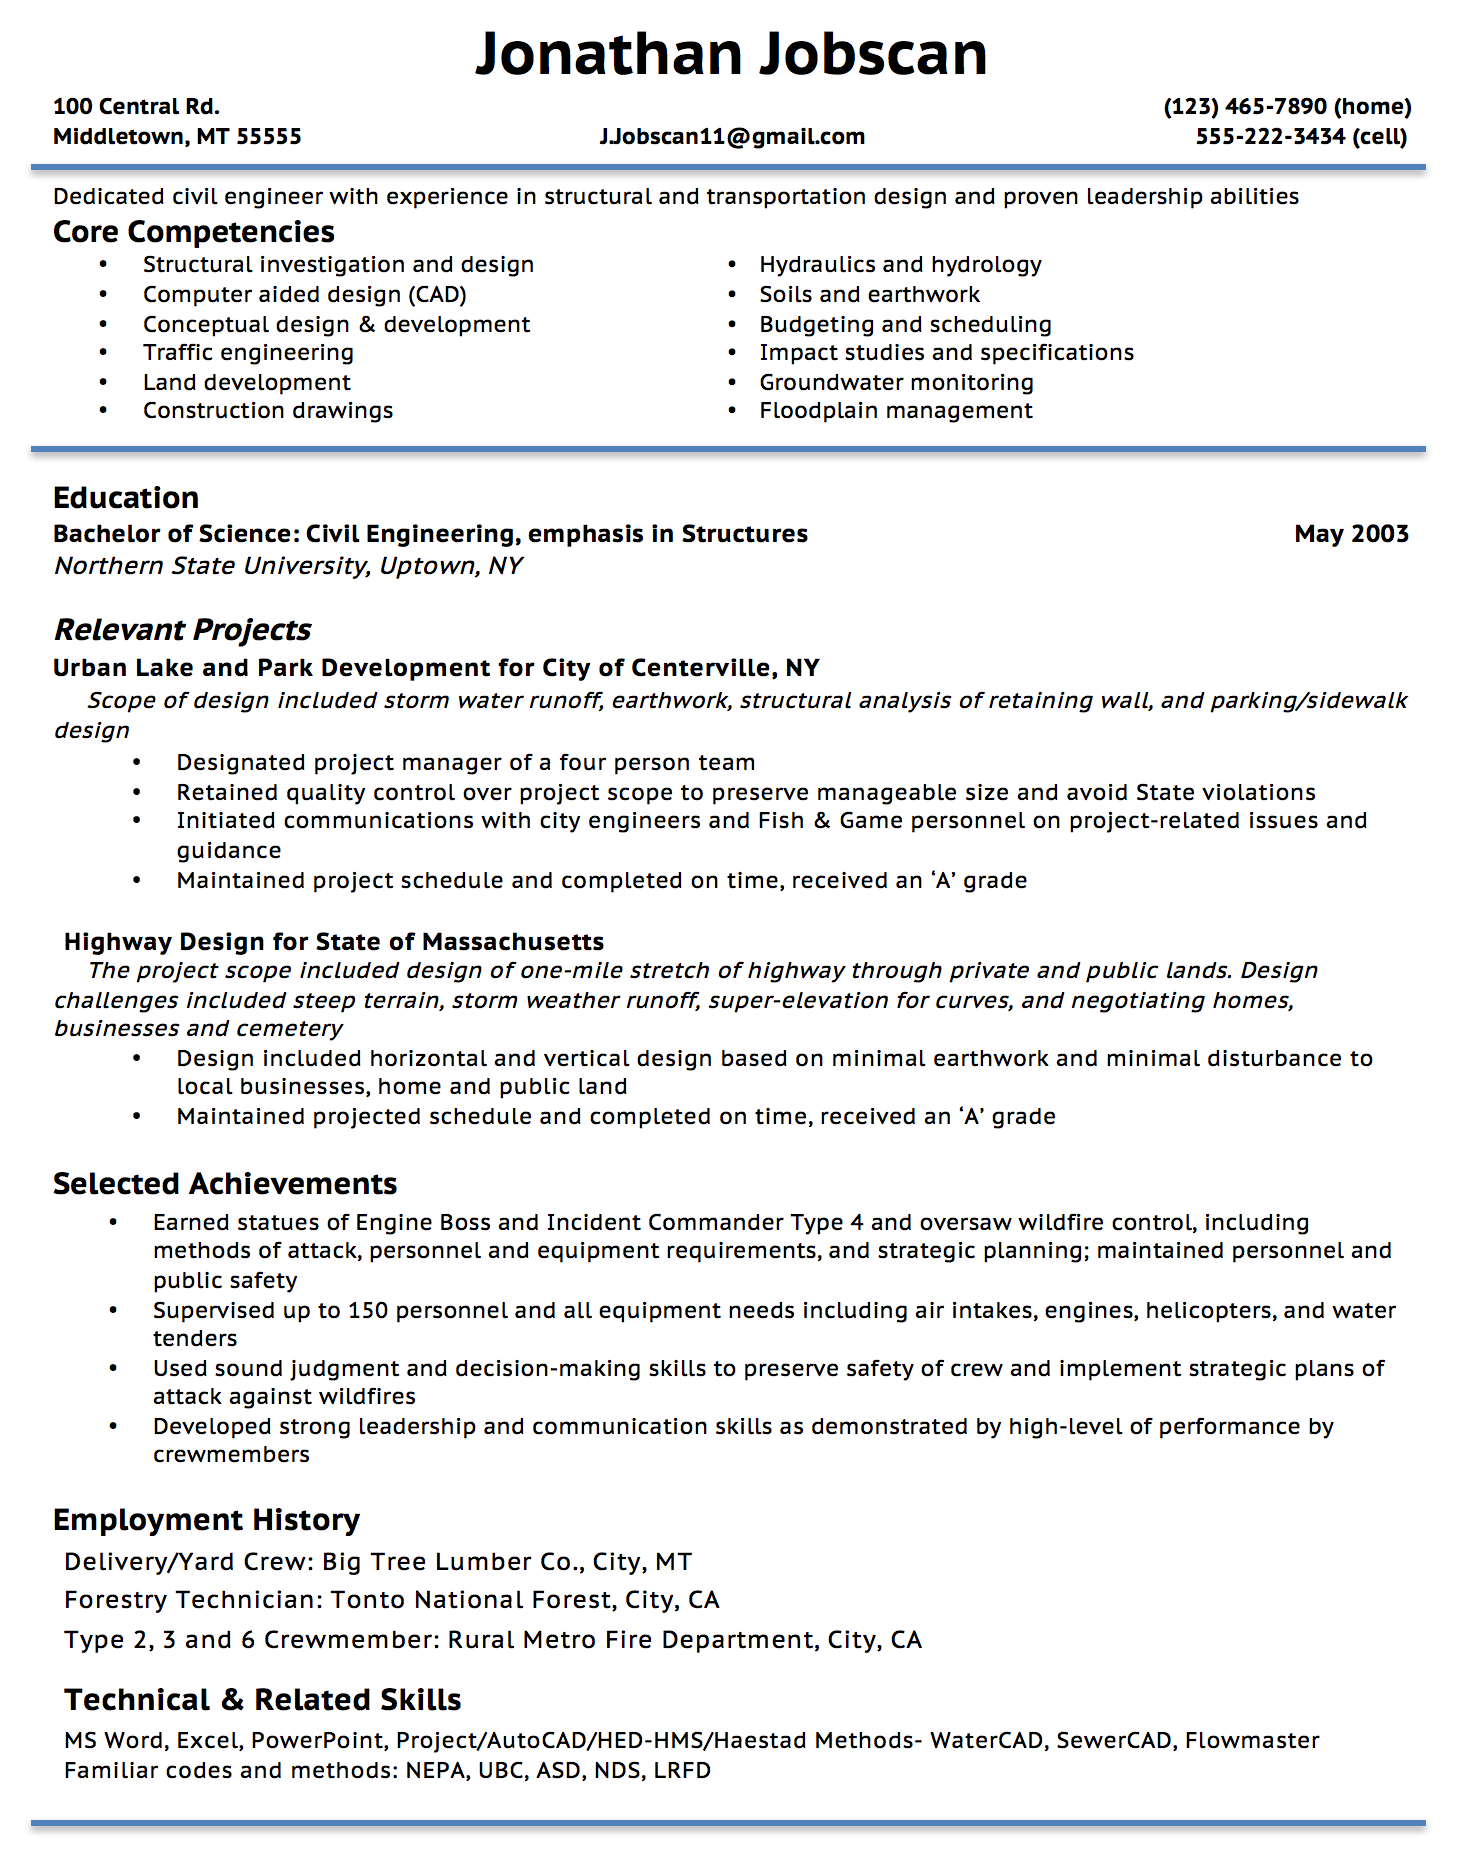 Opposenewapstandardsus  Winsome Resume Writing Guide  Jobscan With Luxury Example Of A Functional Resume Format With Easy On The Eye Sample Programmer Resume Also Babysitting On A Resume In Addition Field Technician Resume And Skills To Include In A Resume As Well As Culinary Resume Examples Additionally Job Skills To Put On A Resume From Jobscanco With Opposenewapstandardsus  Luxury Resume Writing Guide  Jobscan With Easy On The Eye Example Of A Functional Resume Format And Winsome Sample Programmer Resume Also Babysitting On A Resume In Addition Field Technician Resume From Jobscanco